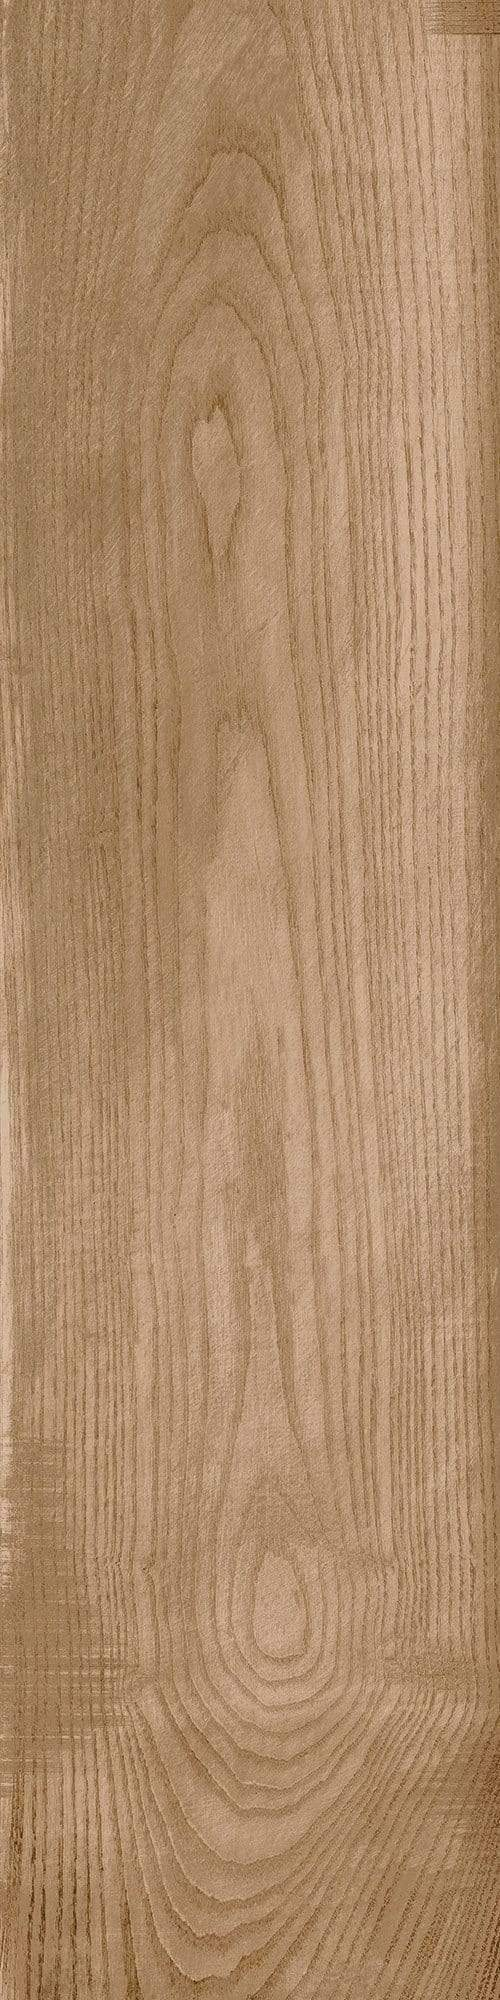 Cheap Oak Wood Effect Floor Tiles